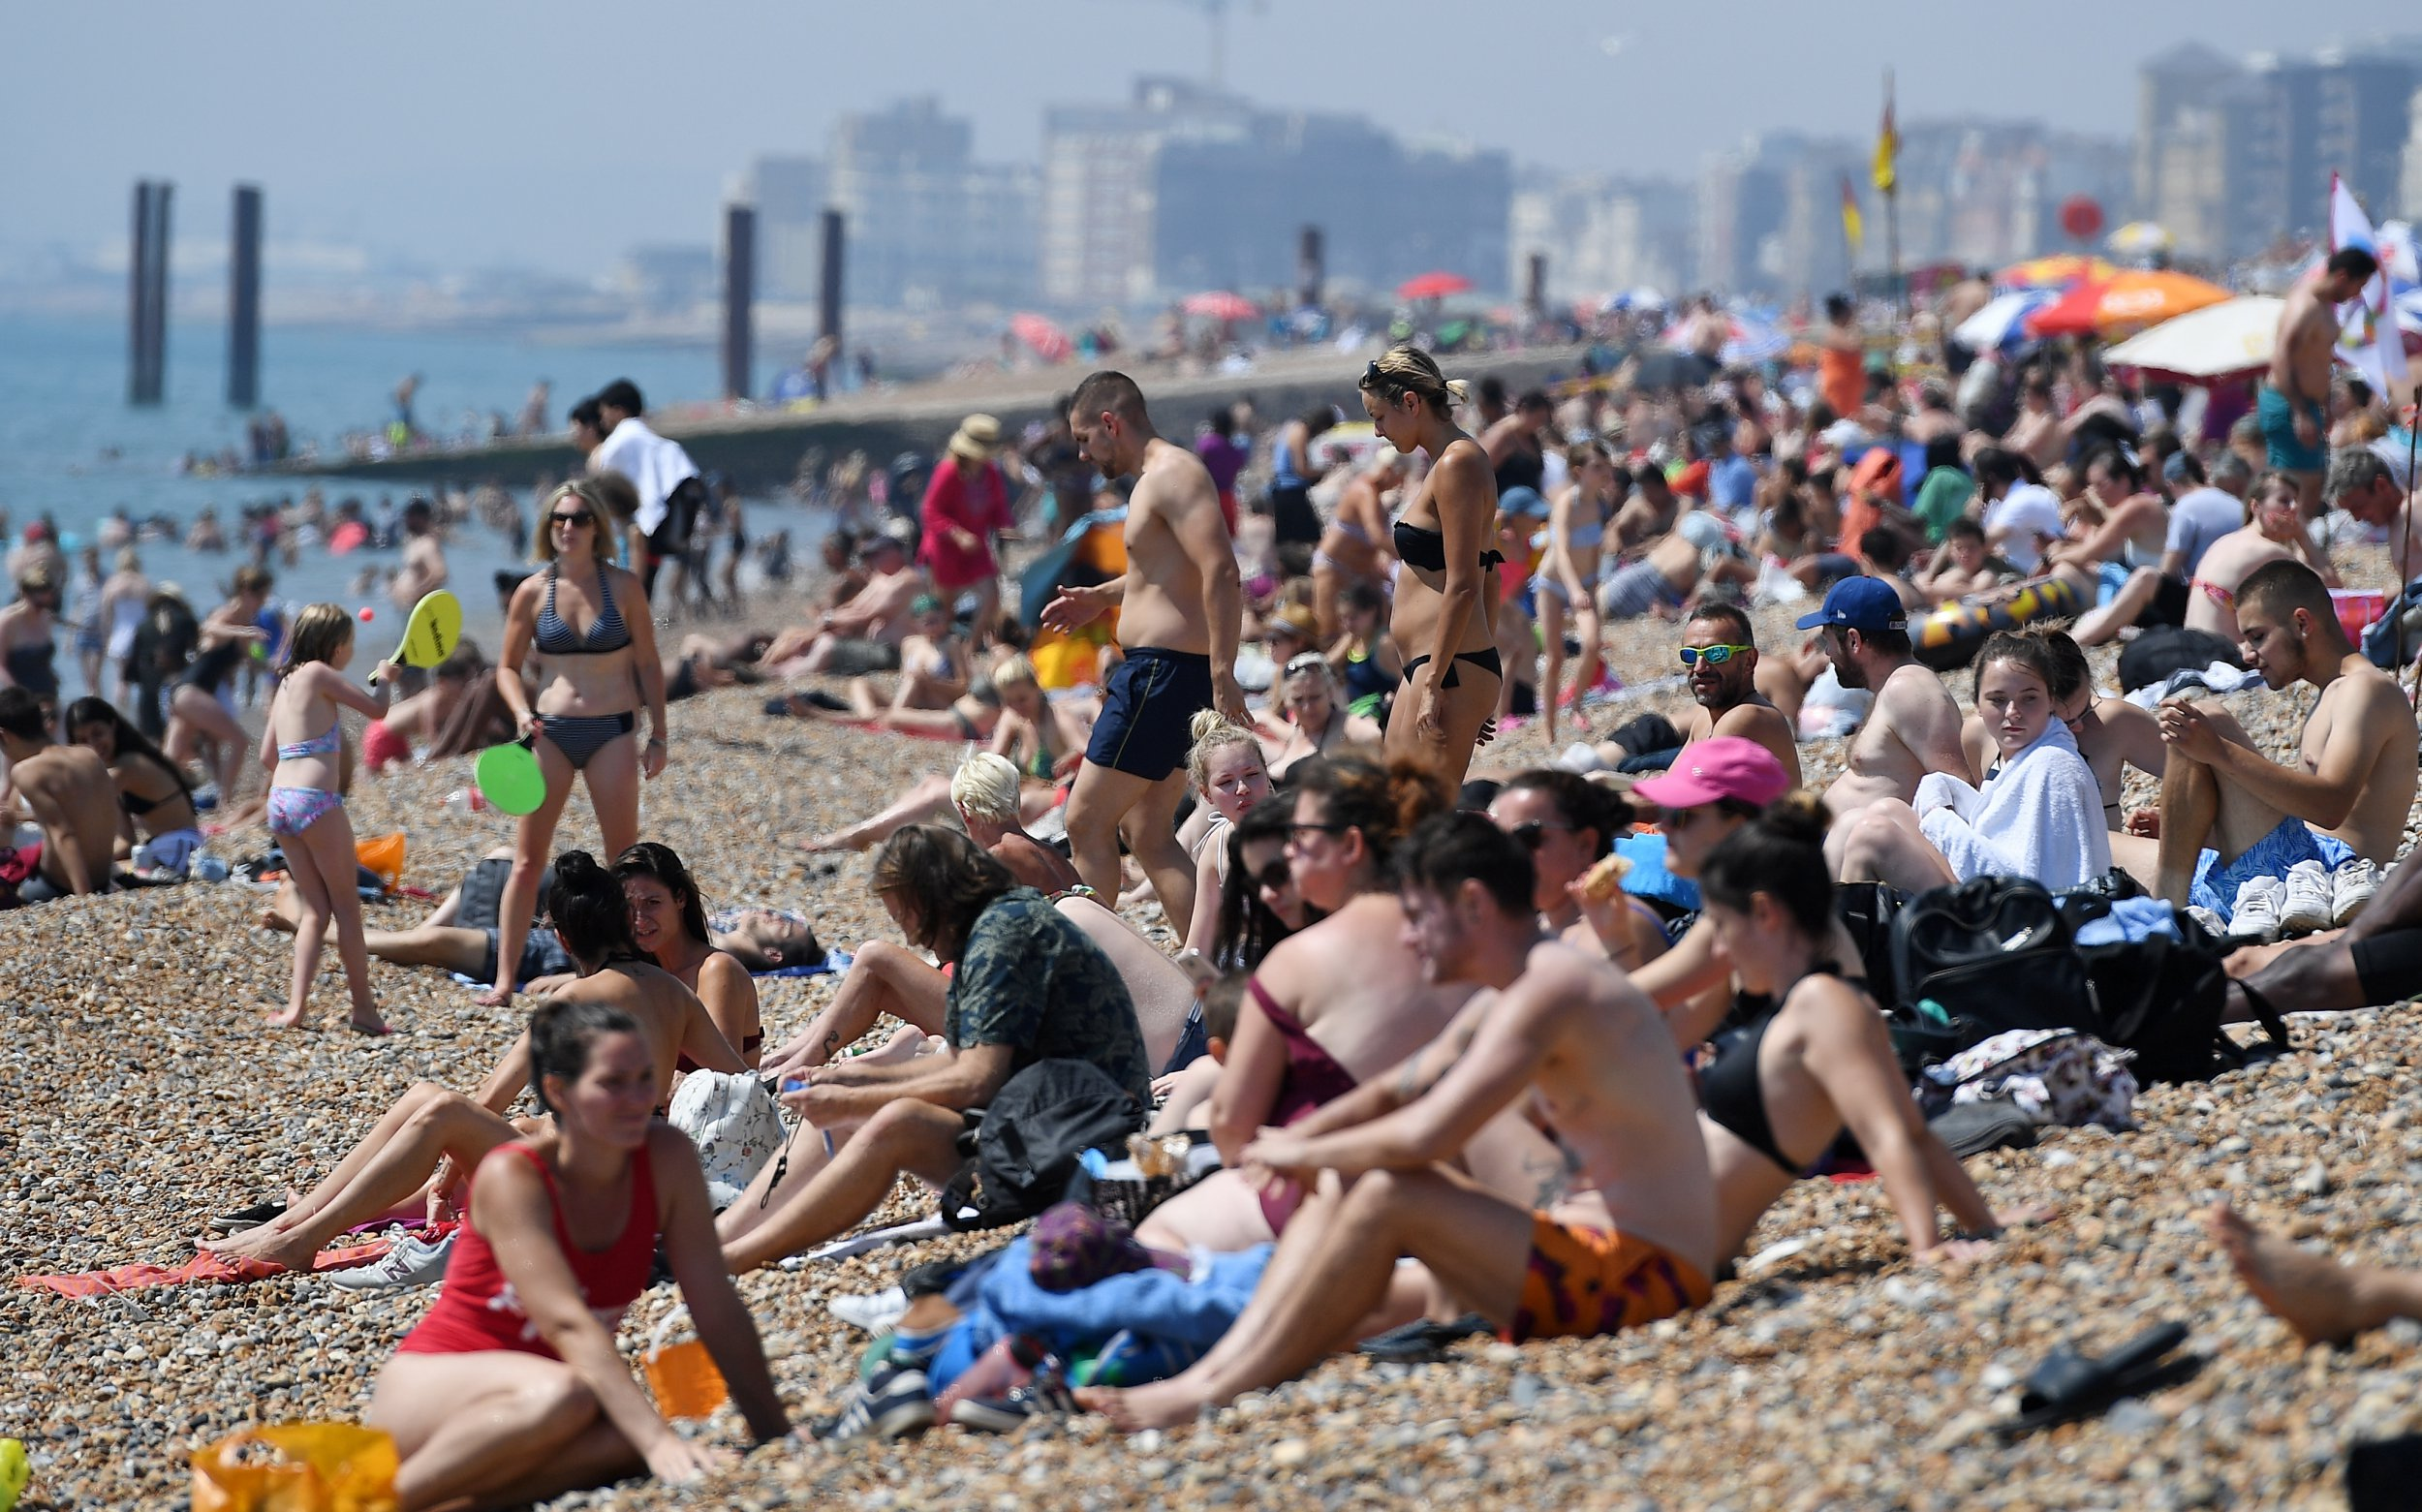 epa06911839 People enjoy the warm weather on Brighton beach in Brighton, Britain, 26 July 2018. Britain is set for its hottest day of the year with temperatures expected to reach close to 36-degree Celsius as the heatwave continues across the country. EPA/ANDY RAIN